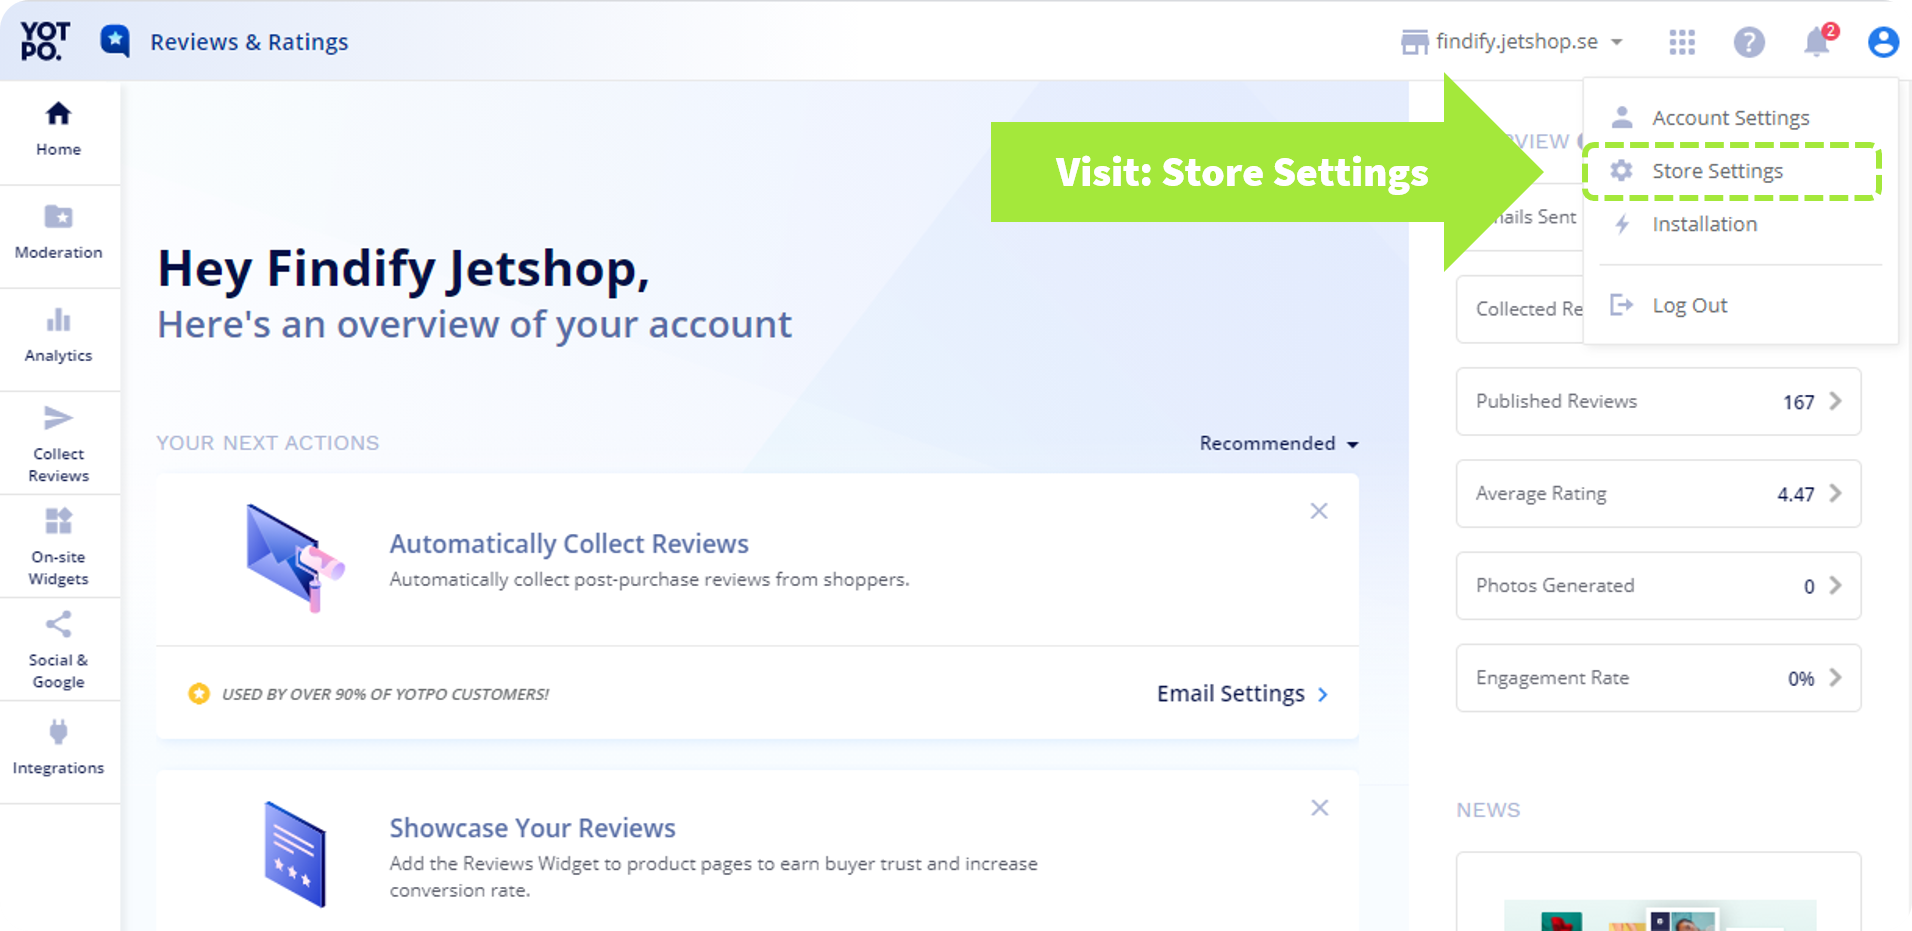 Store Settings in the Yotpo Dashboard